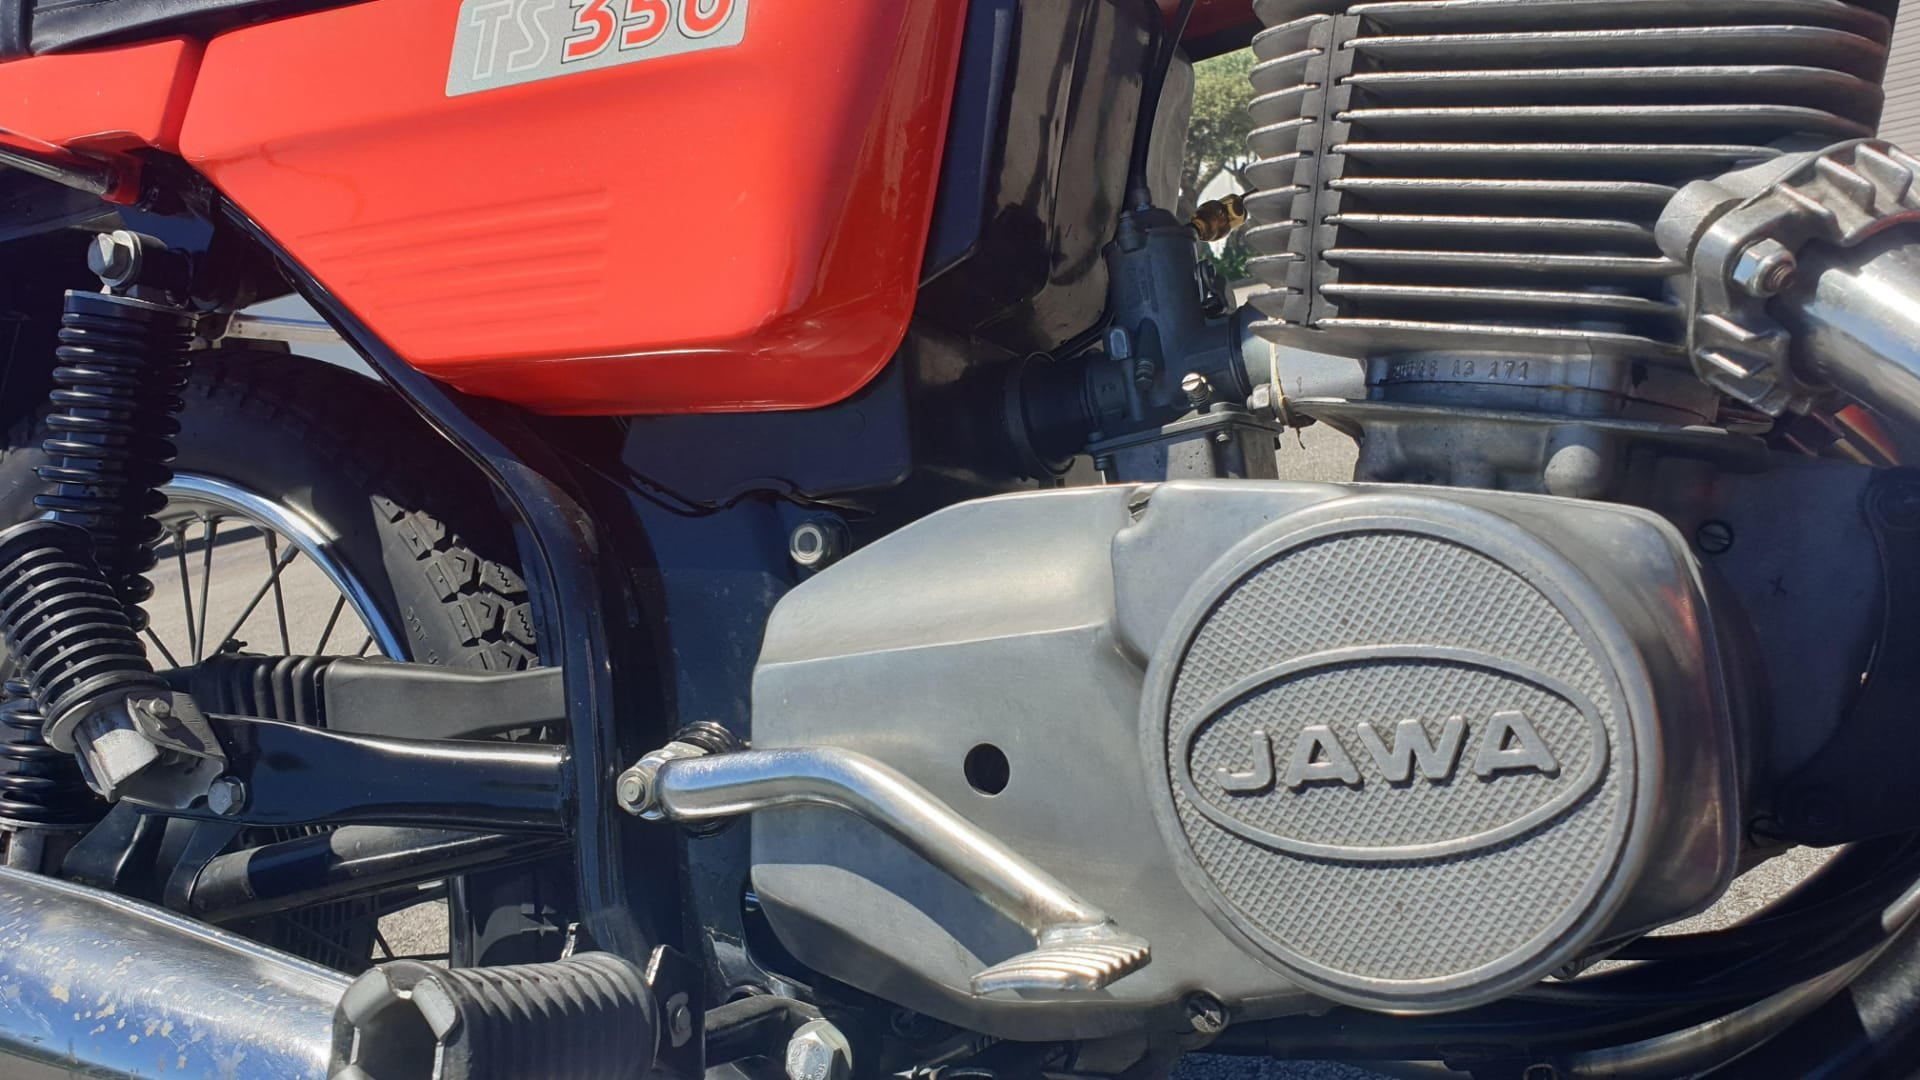 Jawa Twin Sport 350 - 1991 For Sale (picture 4 of 6)